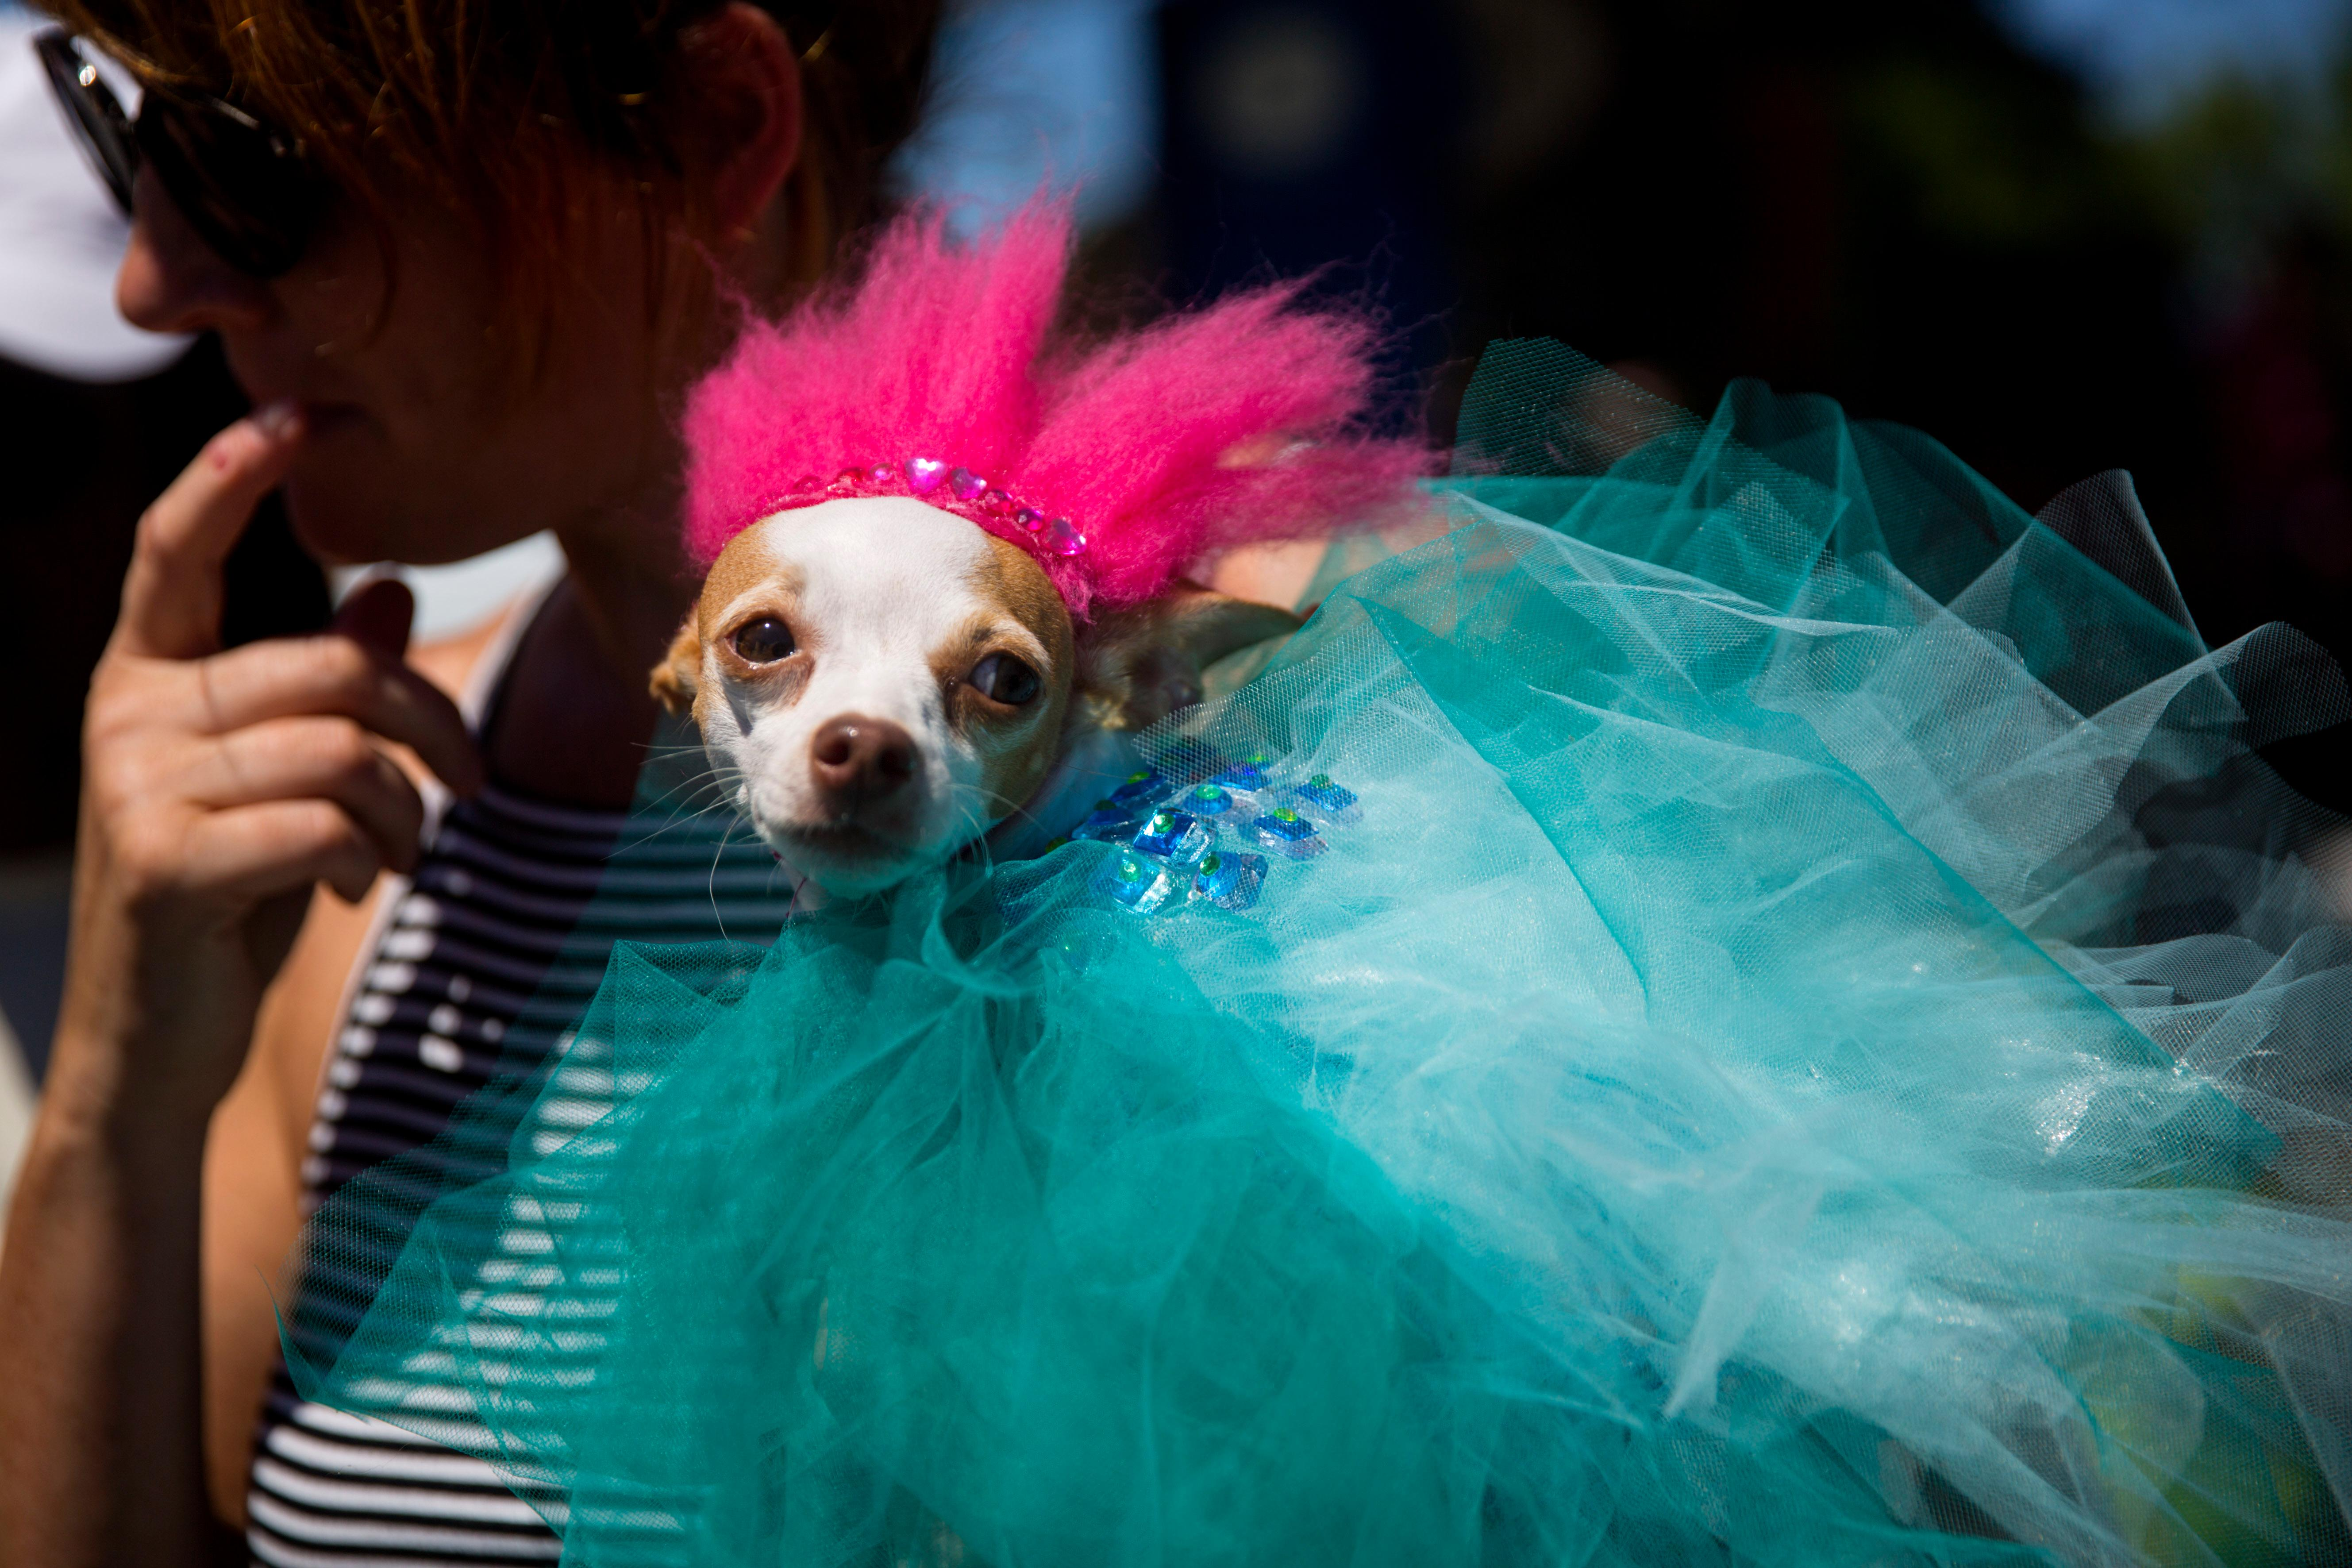 The Seattle PrideFest is here, which also means we get to see the Doggie Drag Contest! Over 30 pups dressed in drag and were judged by real life drag queens. Seattle Humane partnered up with PrideFest to put on this event which raised funds for Pet Project, an offshoot of the Pet Food Bank, which provides services to more than 200 pets belonging to low-income individuals living with HIV/AIDS or cancer. Pet Project matches volunteers one-on-one with clients to help them with their basic pet care needs on a monthly basis and enable clients to keep their pets. (Sy Bean / Seattle Refined)